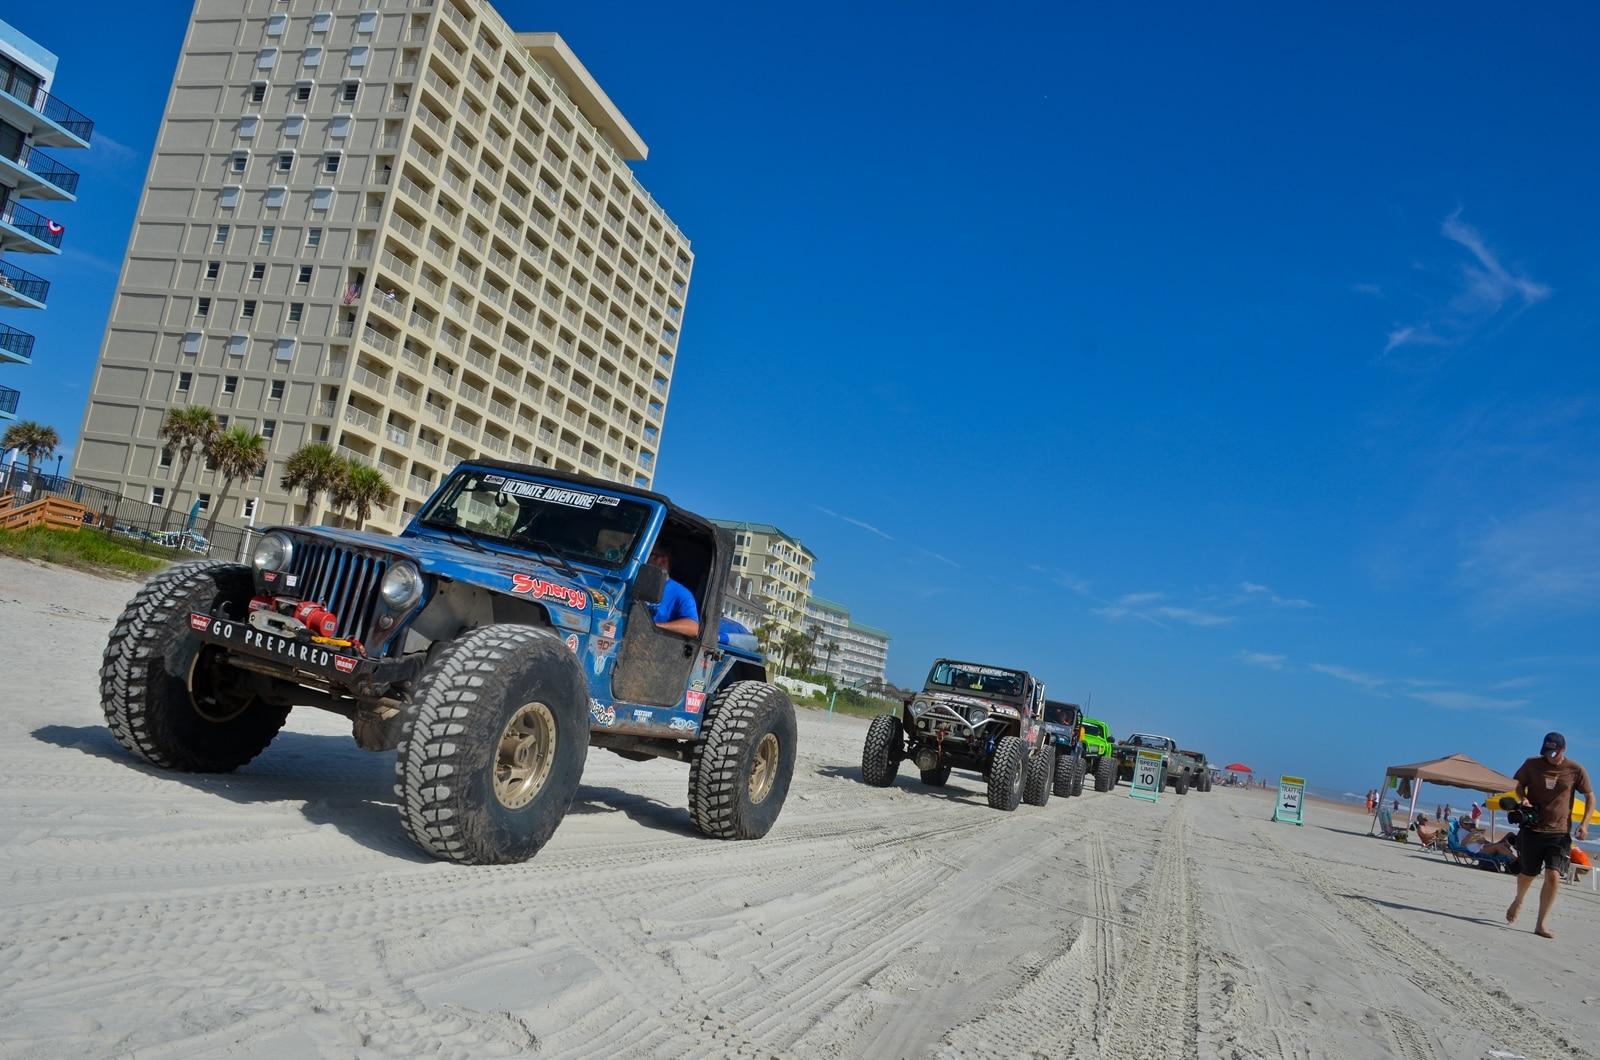 Ultimate Adventure 2013 Daytona Beach 01 Synergy MFG Willys Jeep TJ Truck Chris Durham